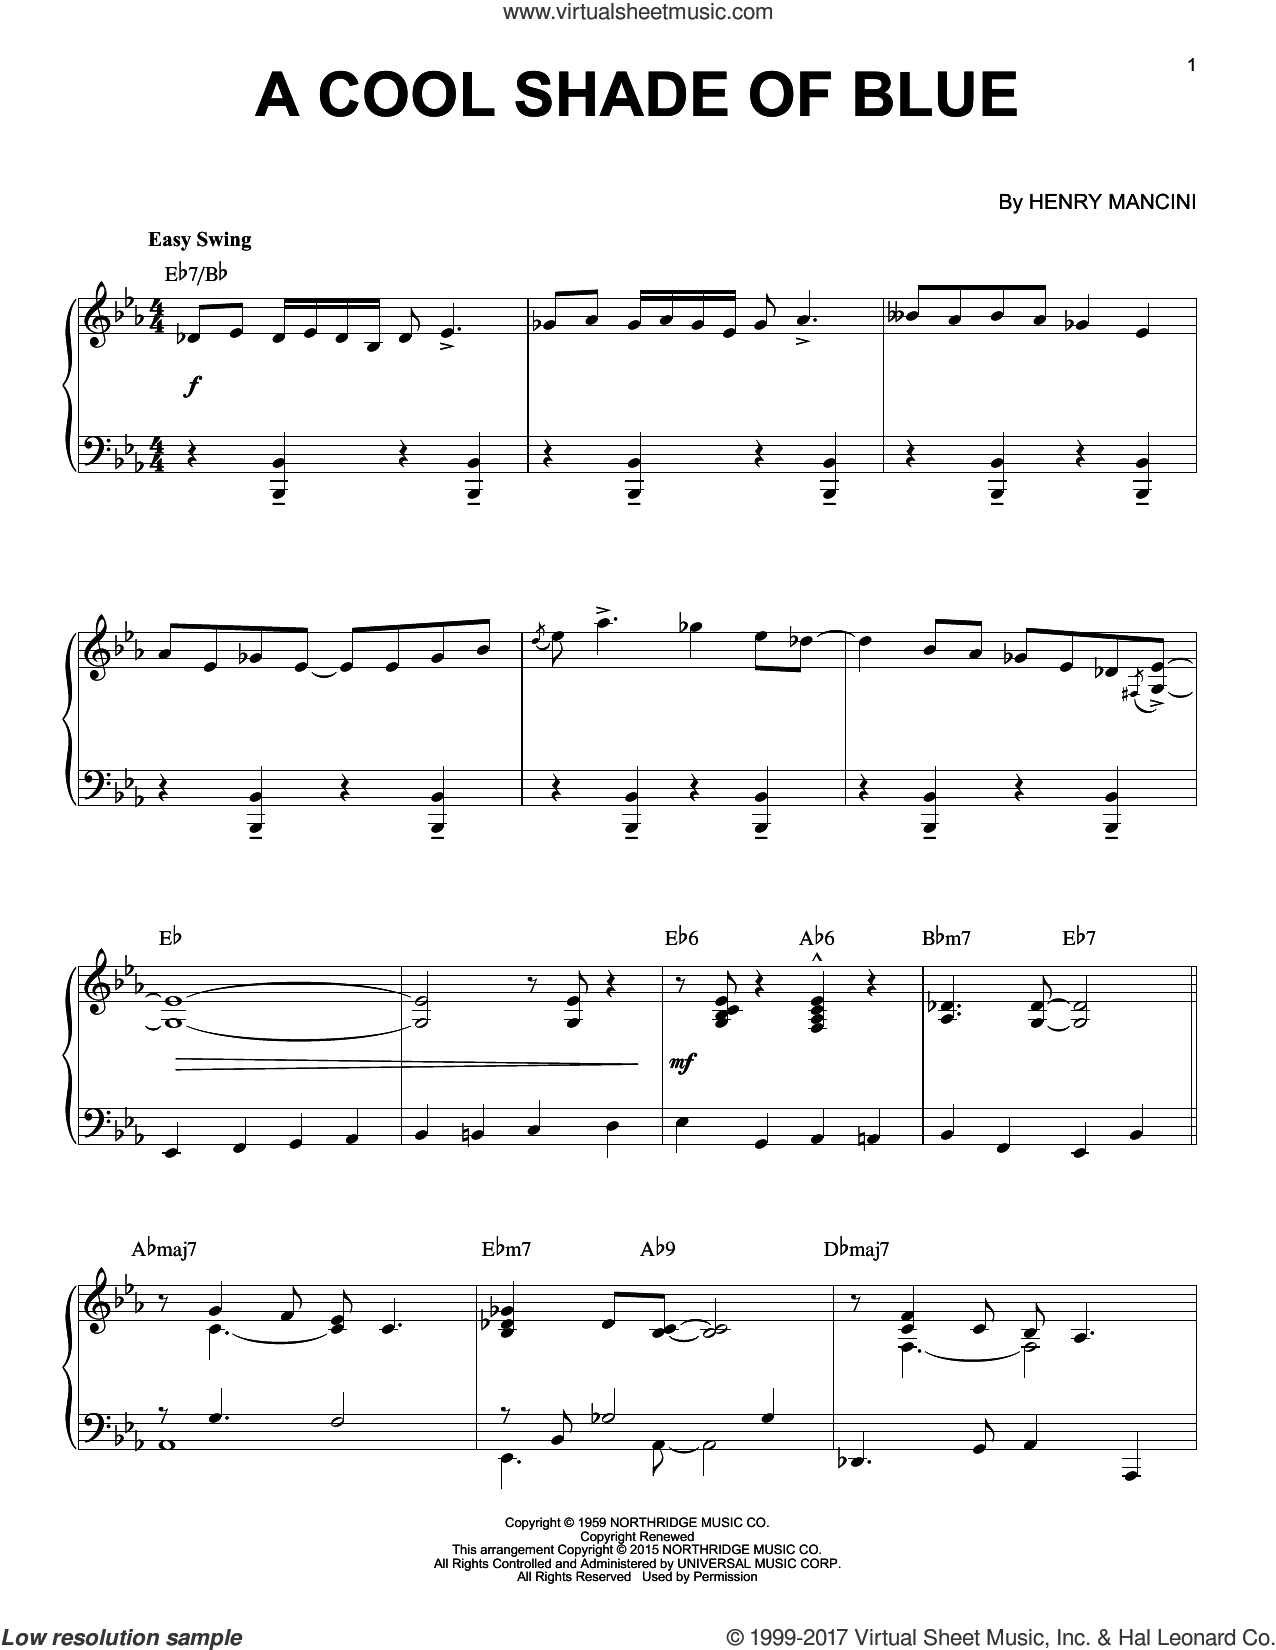 A Cool Shade Of Blue sheet music for piano solo by Henry Mancini, intermediate skill level